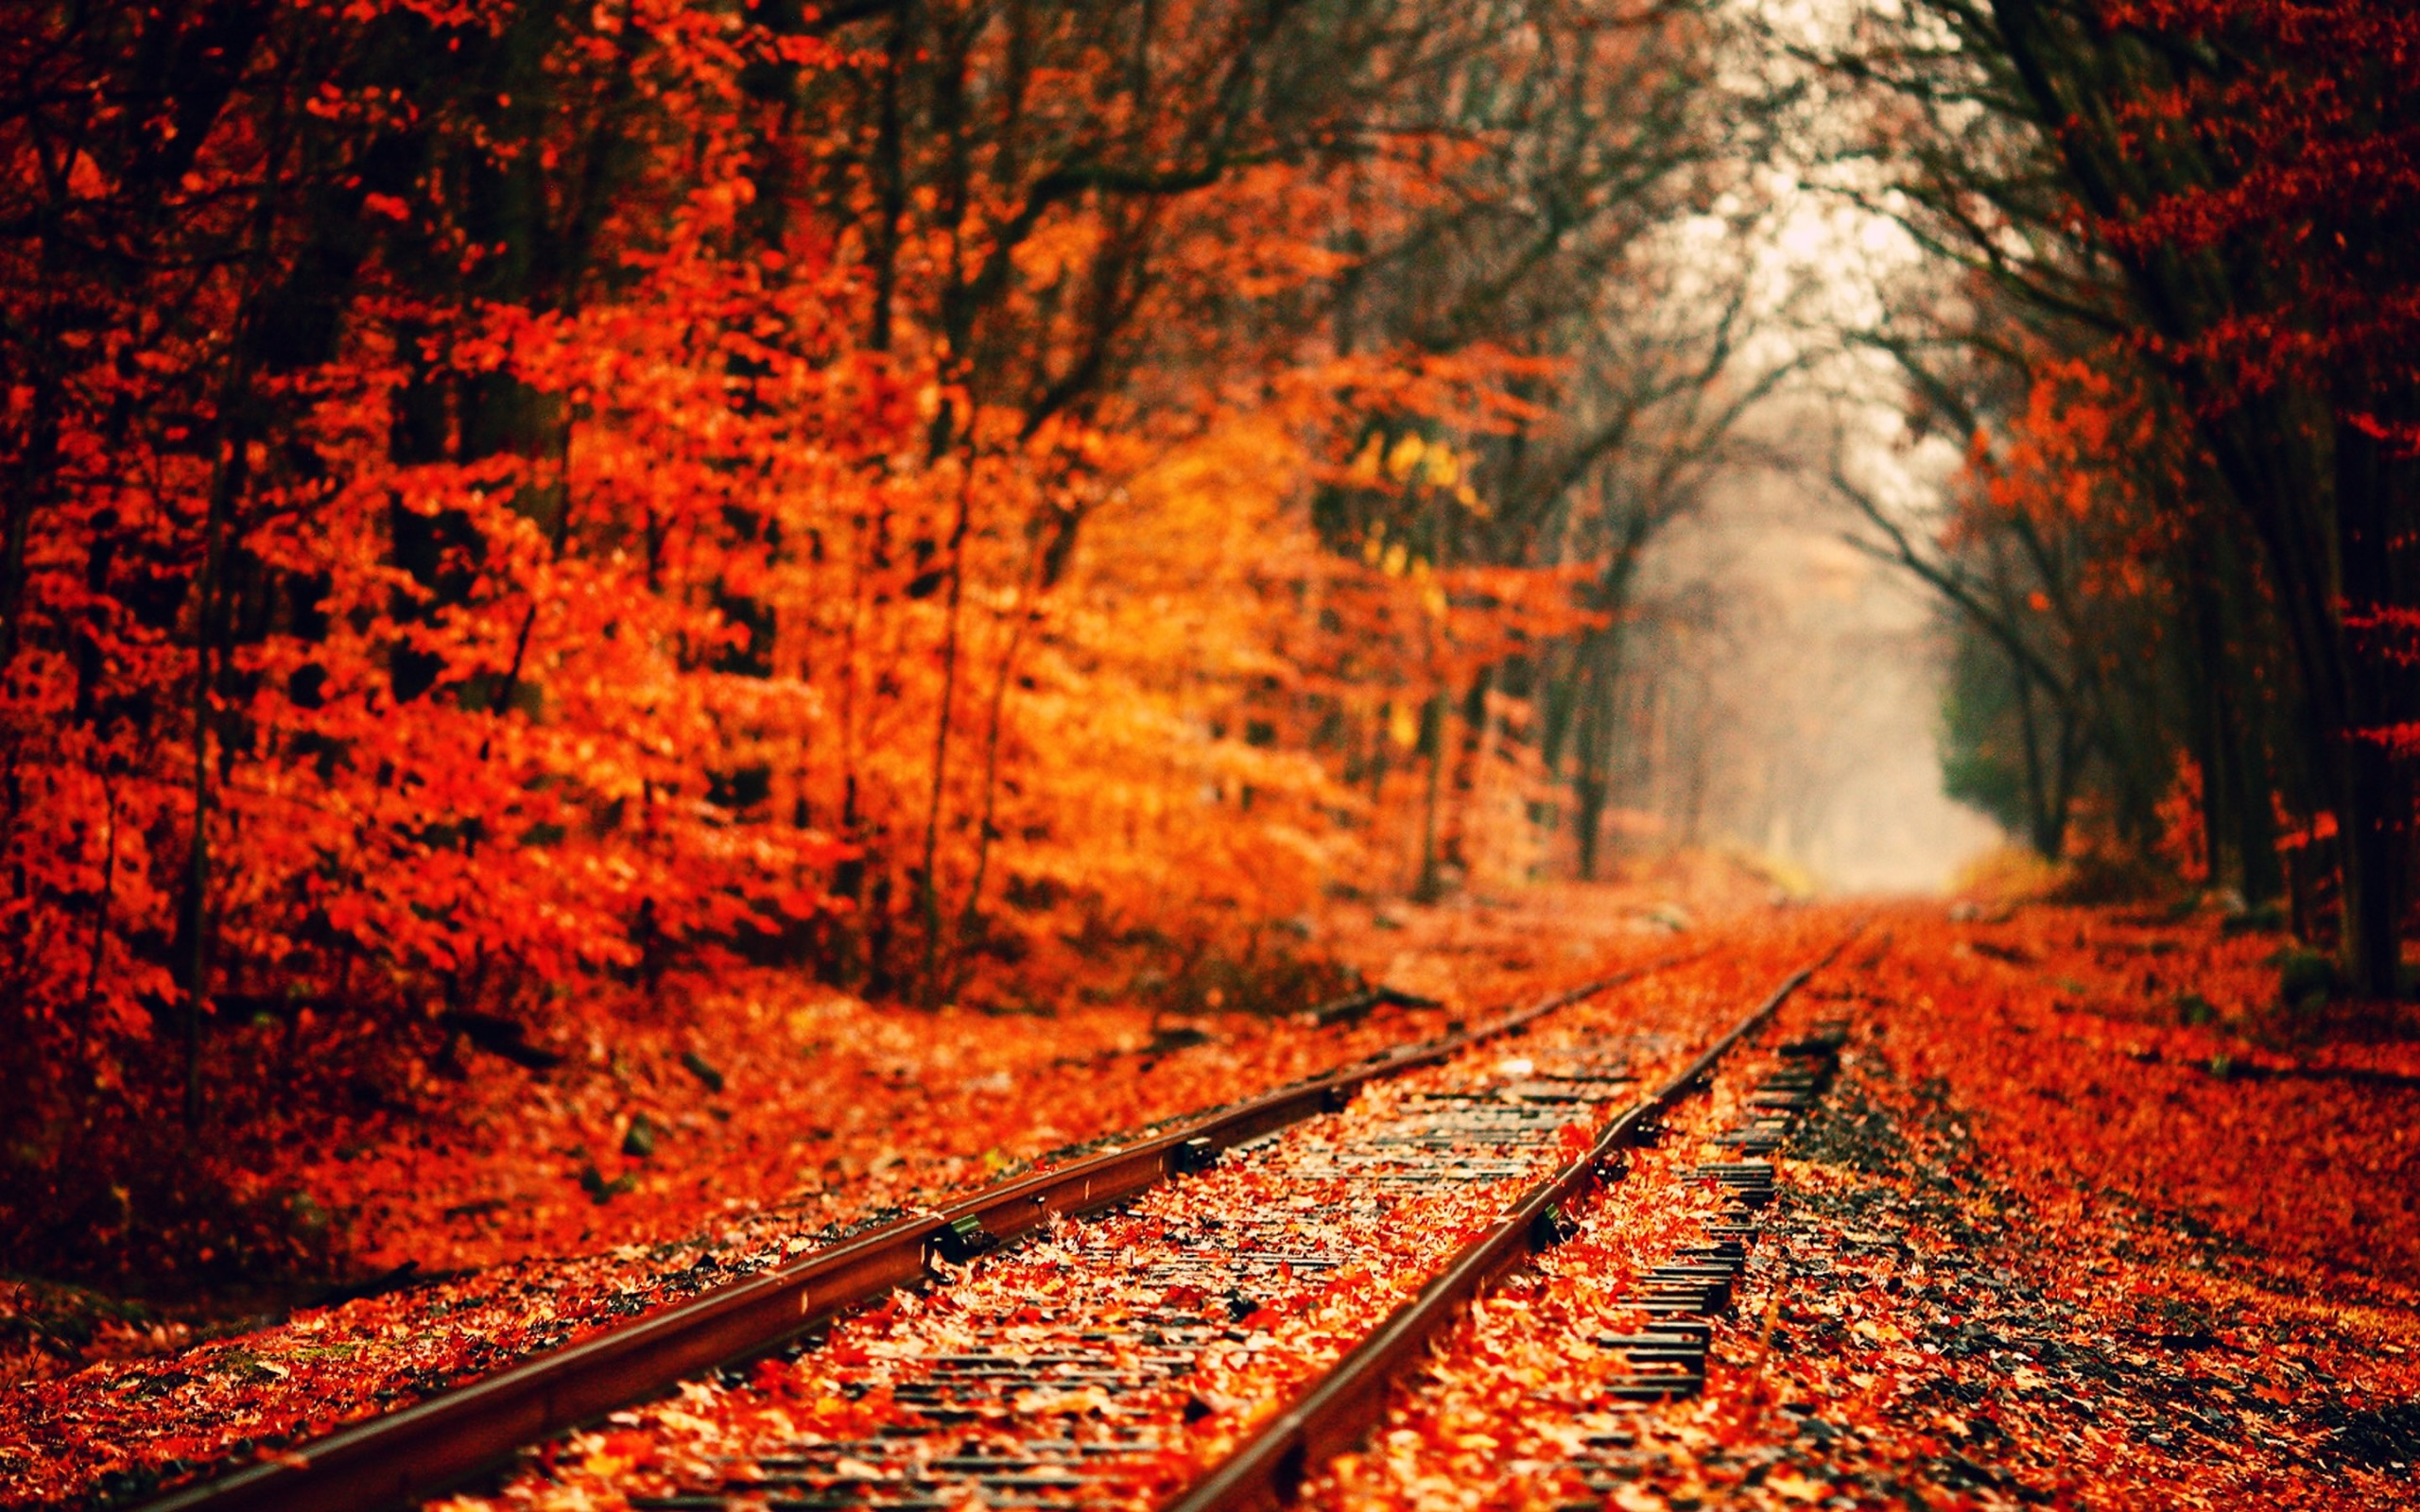 2560x1600 Autumn Wallpapers, Free Desktop Backgrounds - Wallpaper Path